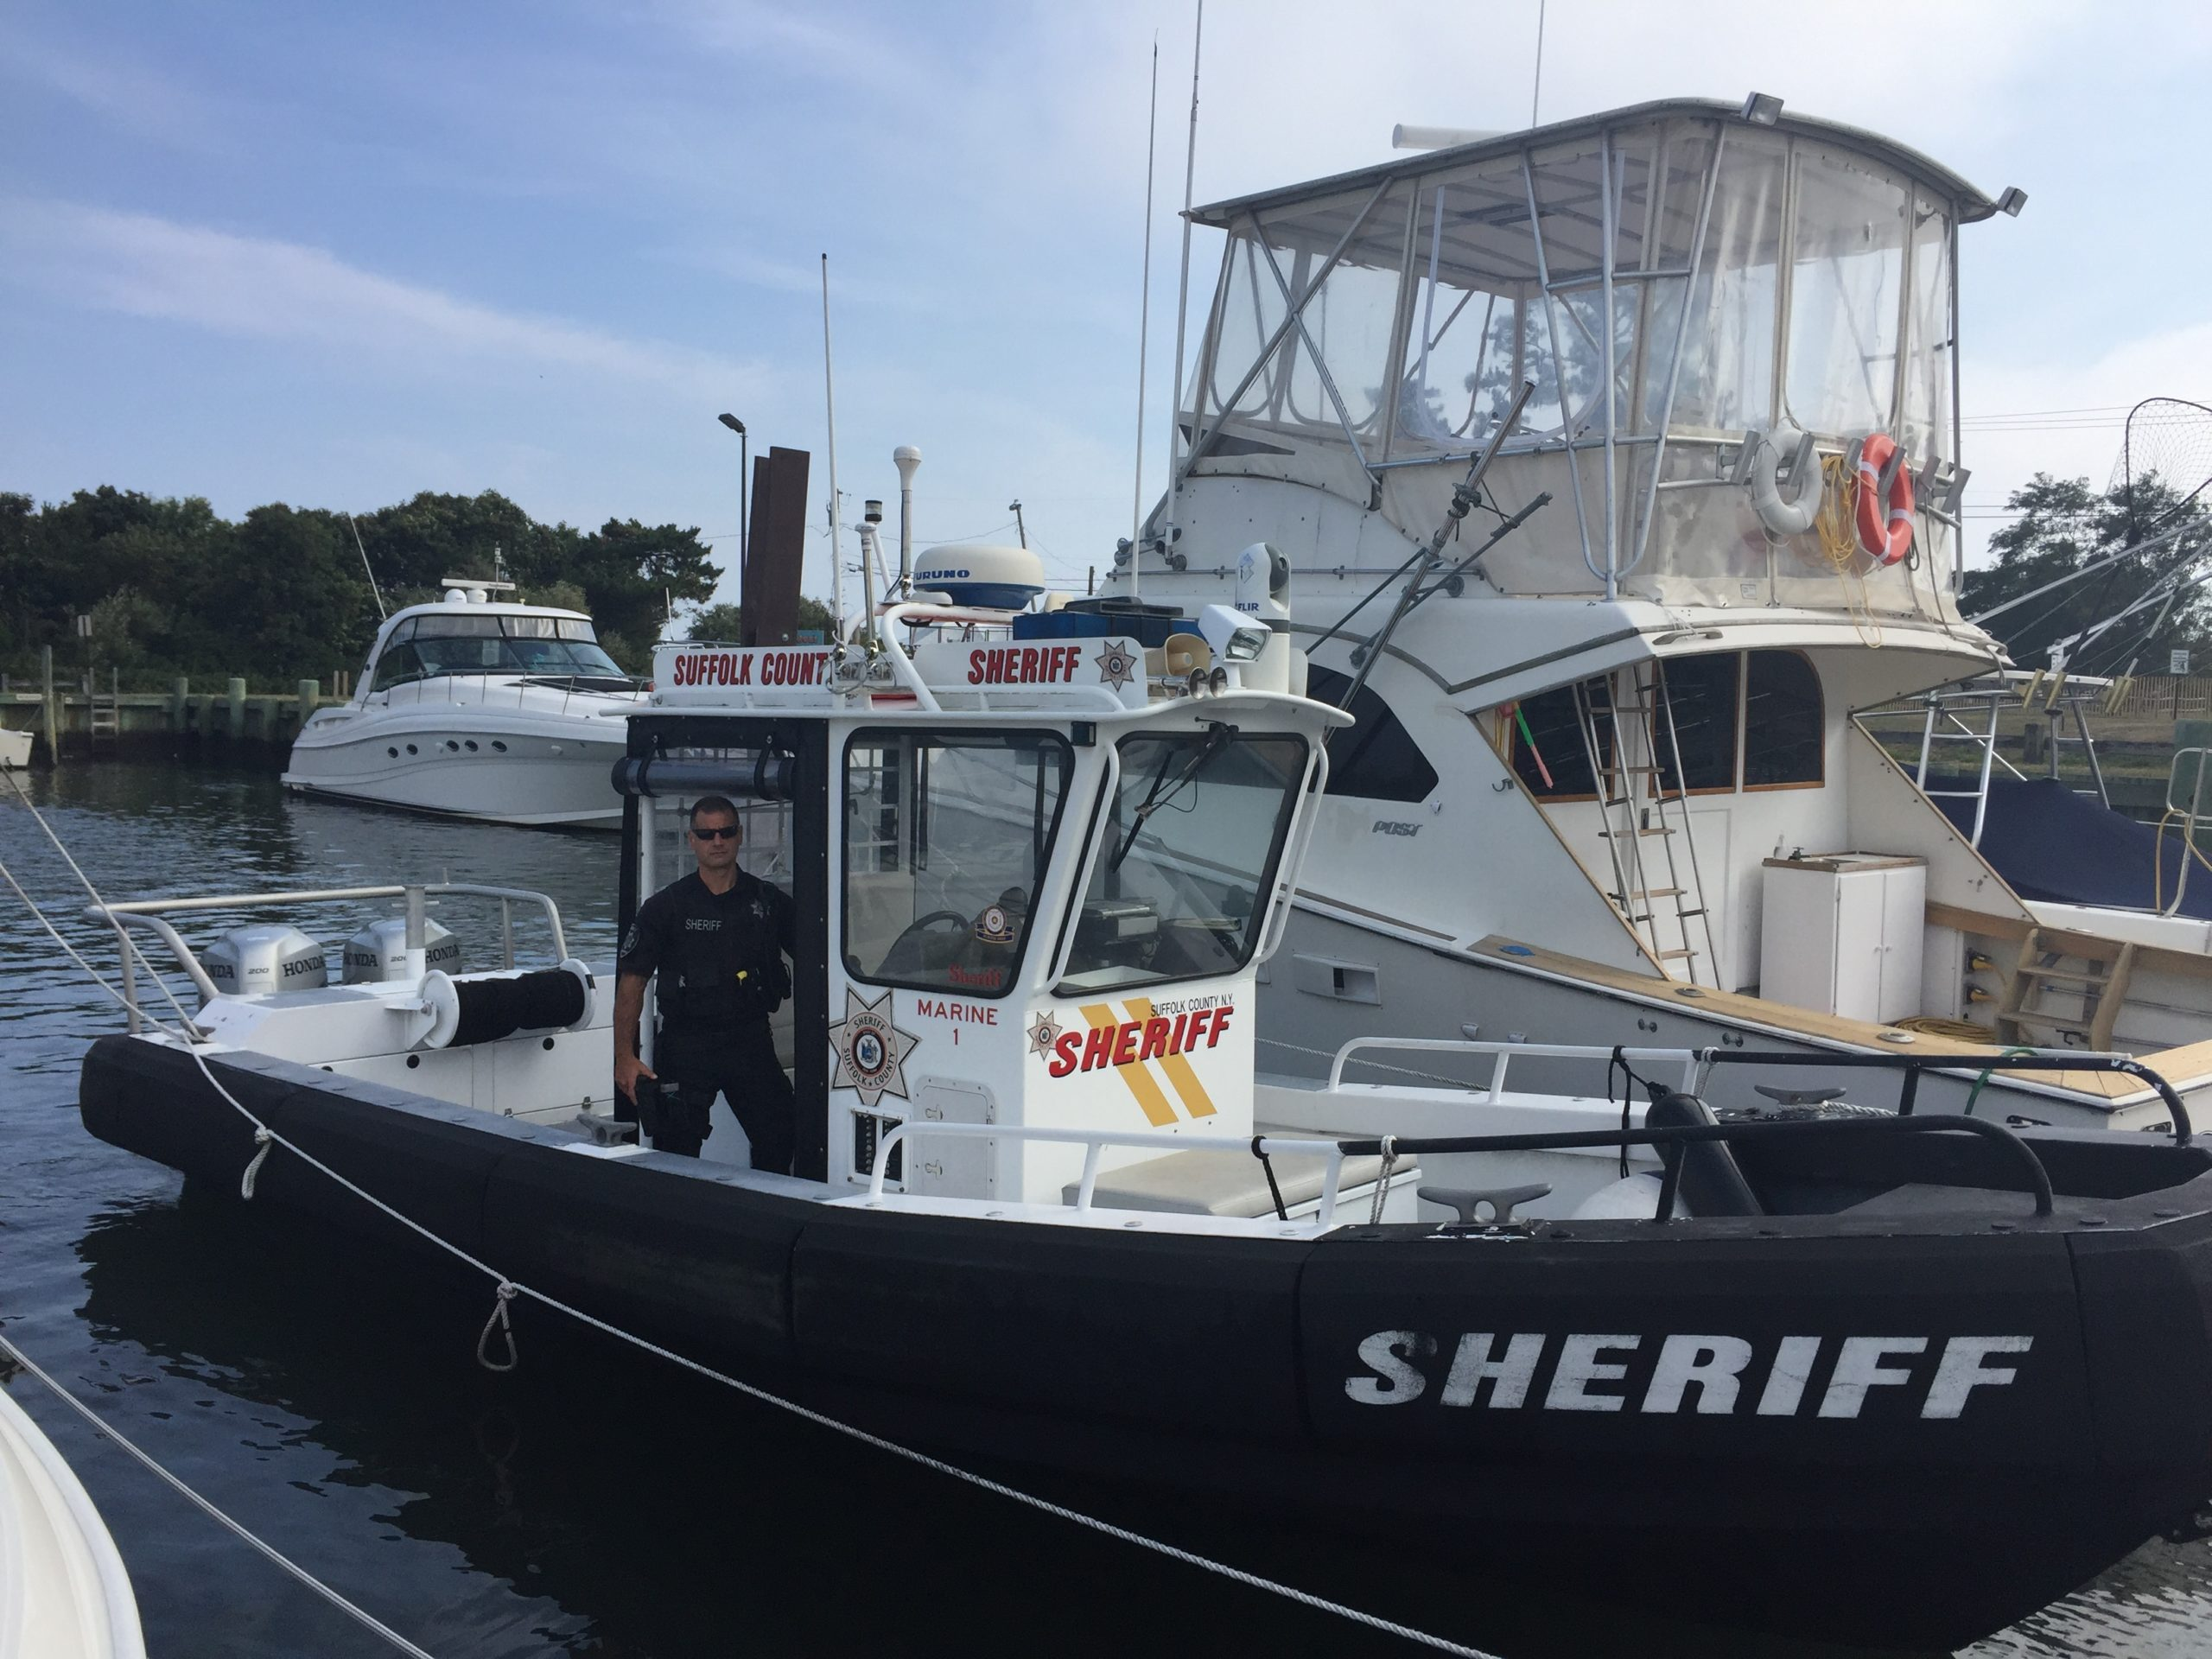 Deputy Sheriff Thomas Lyons on Marine 1.